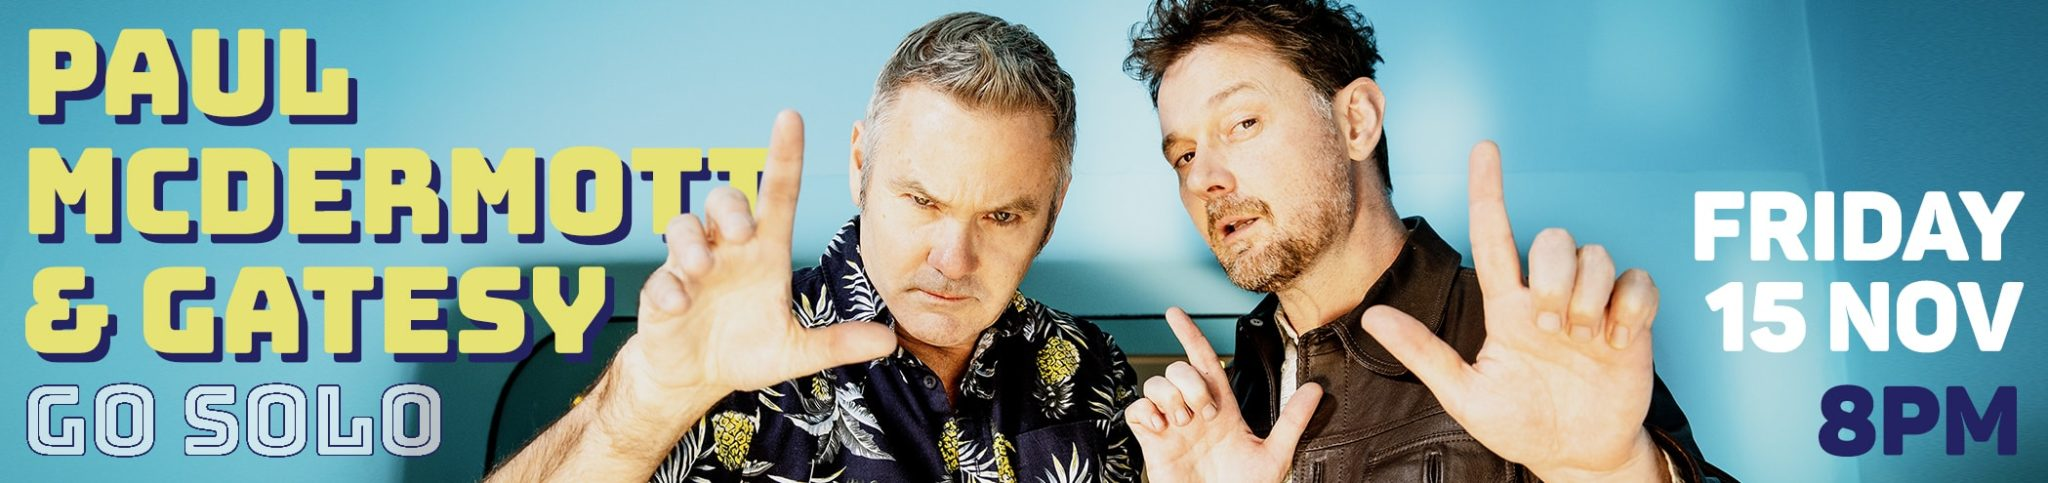 Paul McDermott & Gatesy Go Solo